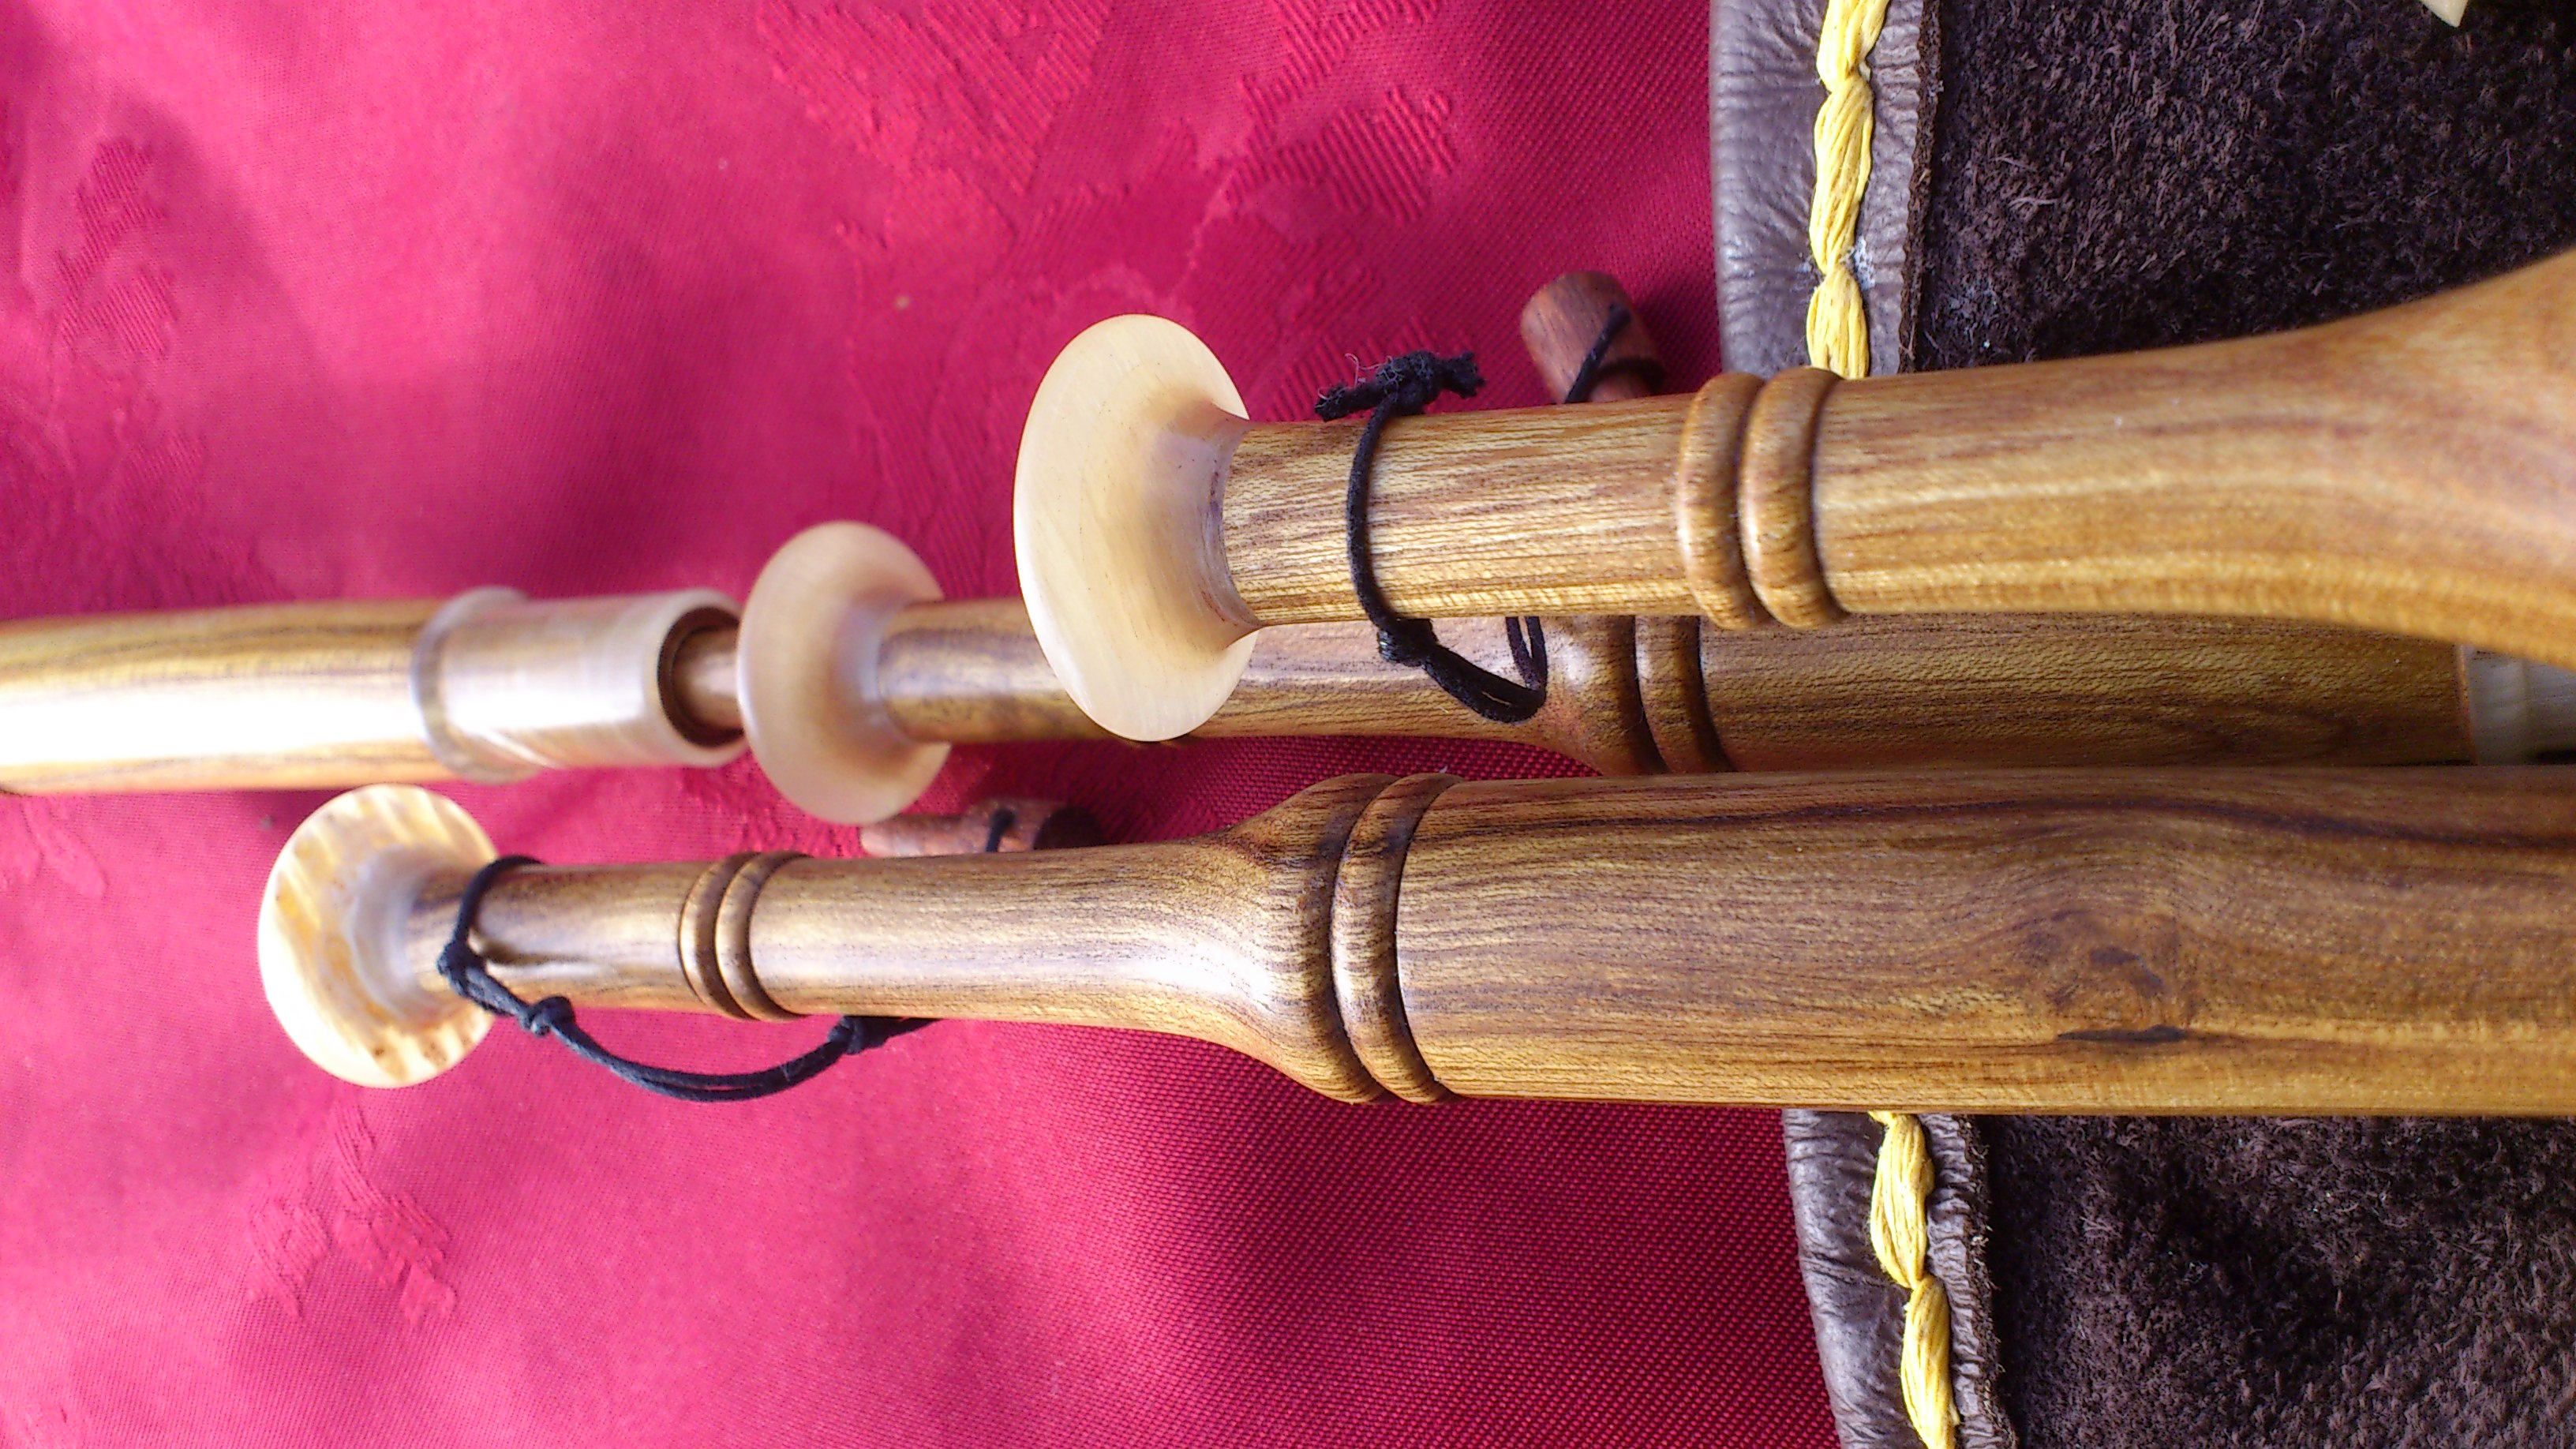 Laburnum smallpipes